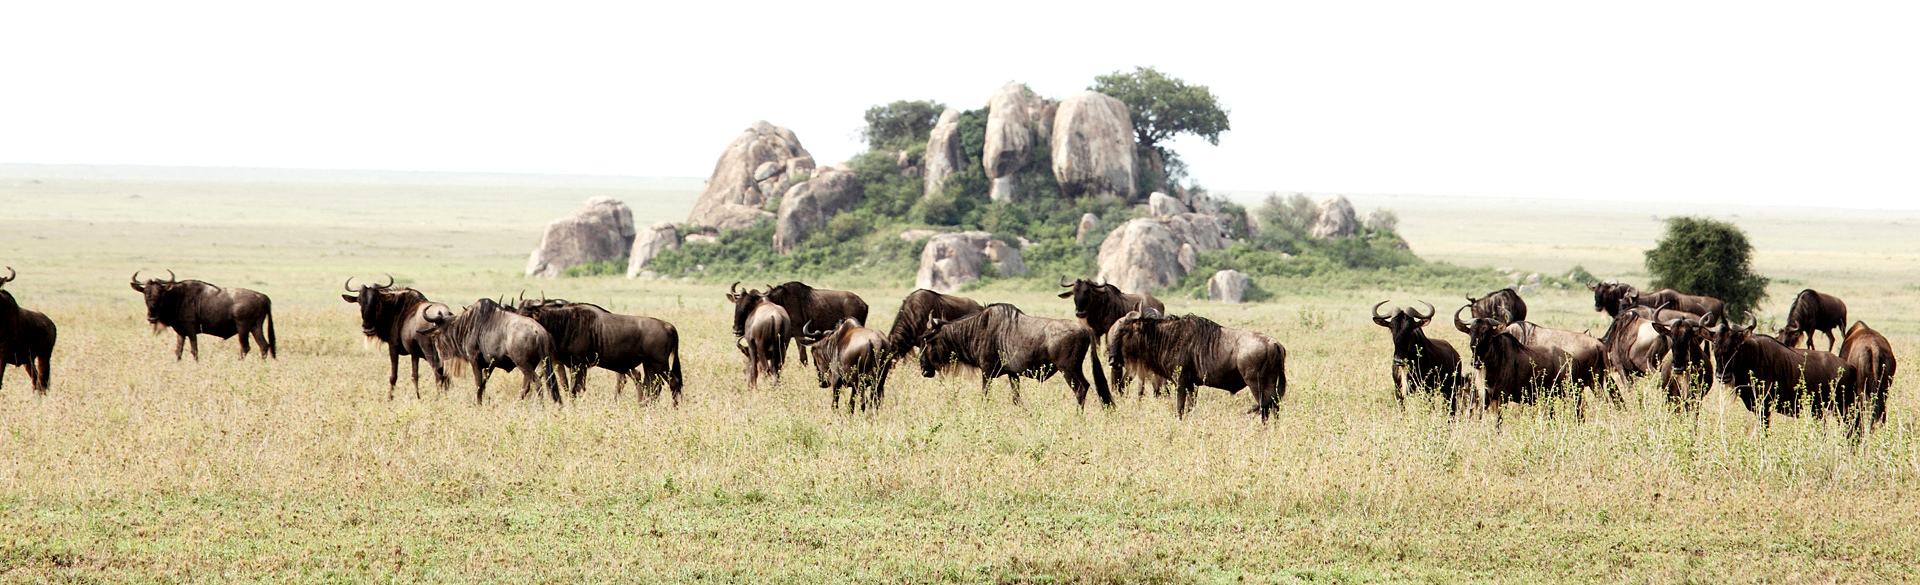 Wildebeest near Moru Kopjes after the long rains courtesy Gordie Owles and Asilia